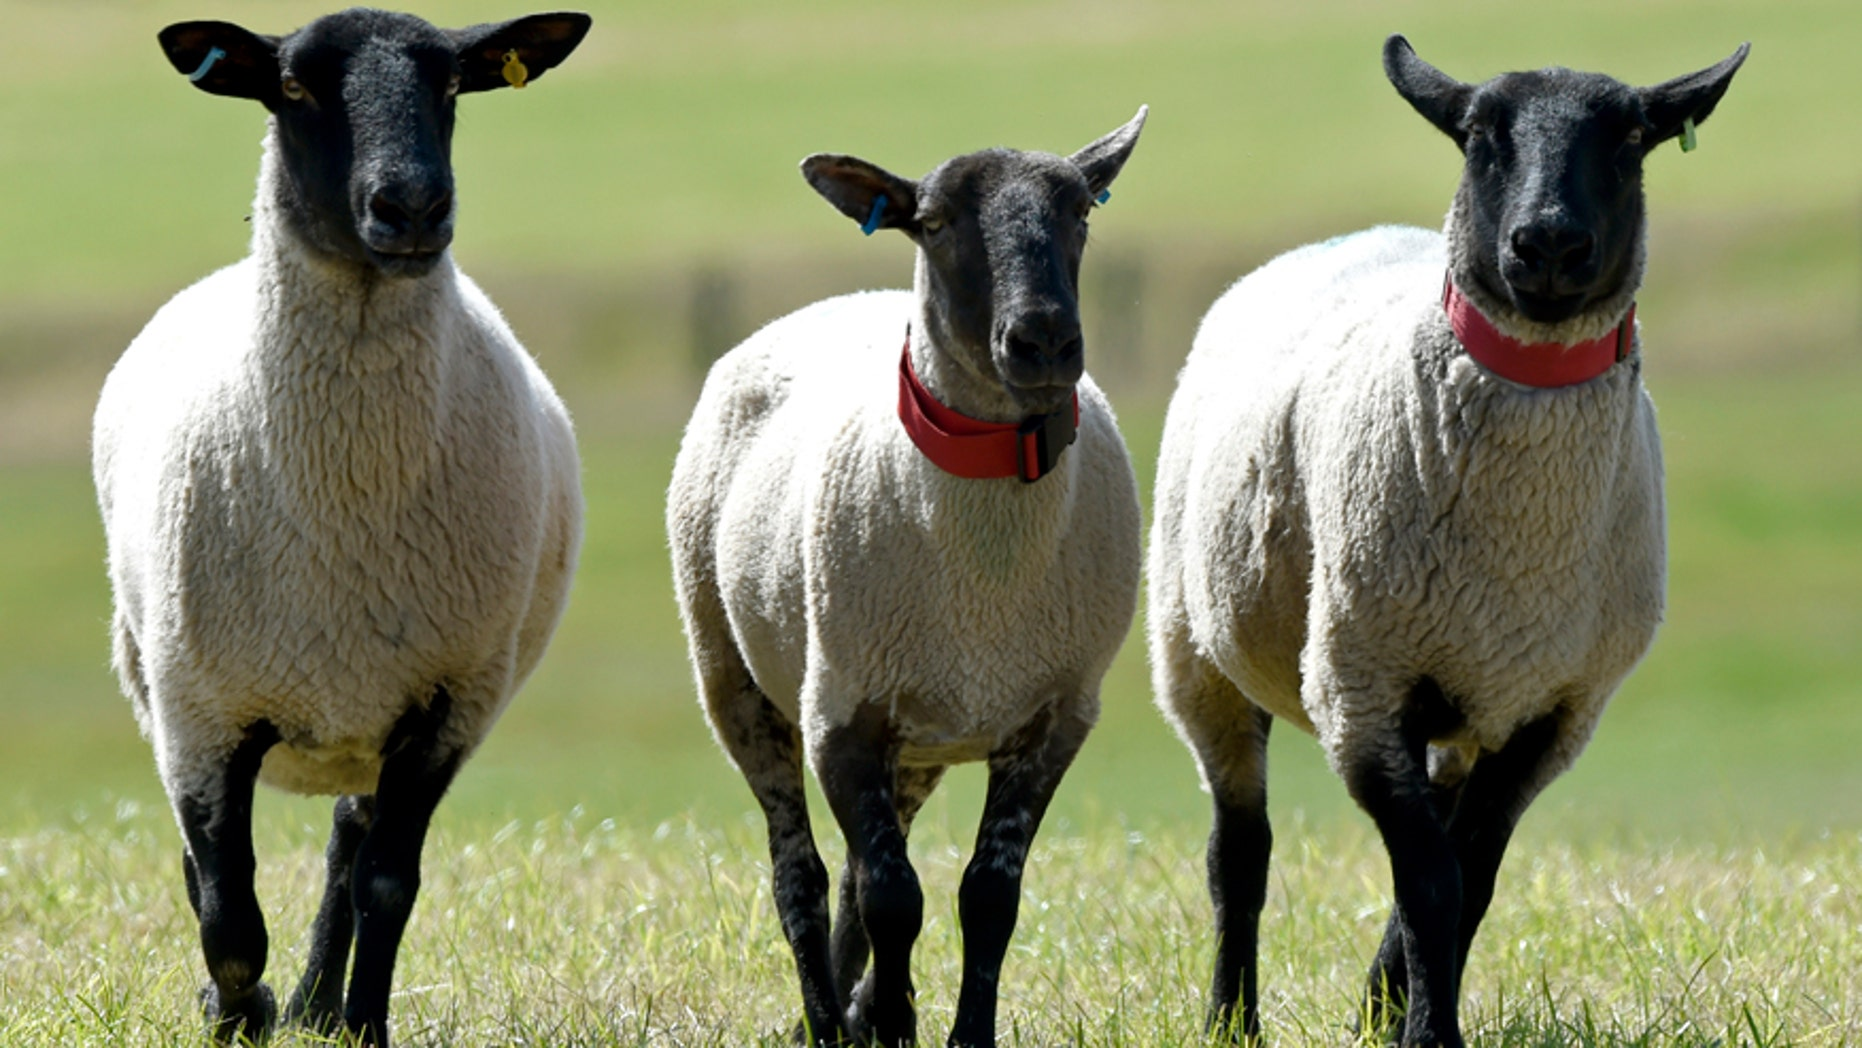 July 31, 2015: Suffolk cross sheep wear red collars at the 2015 Welsh National Sheep Dog Trials at Llanvetherine in Wales.